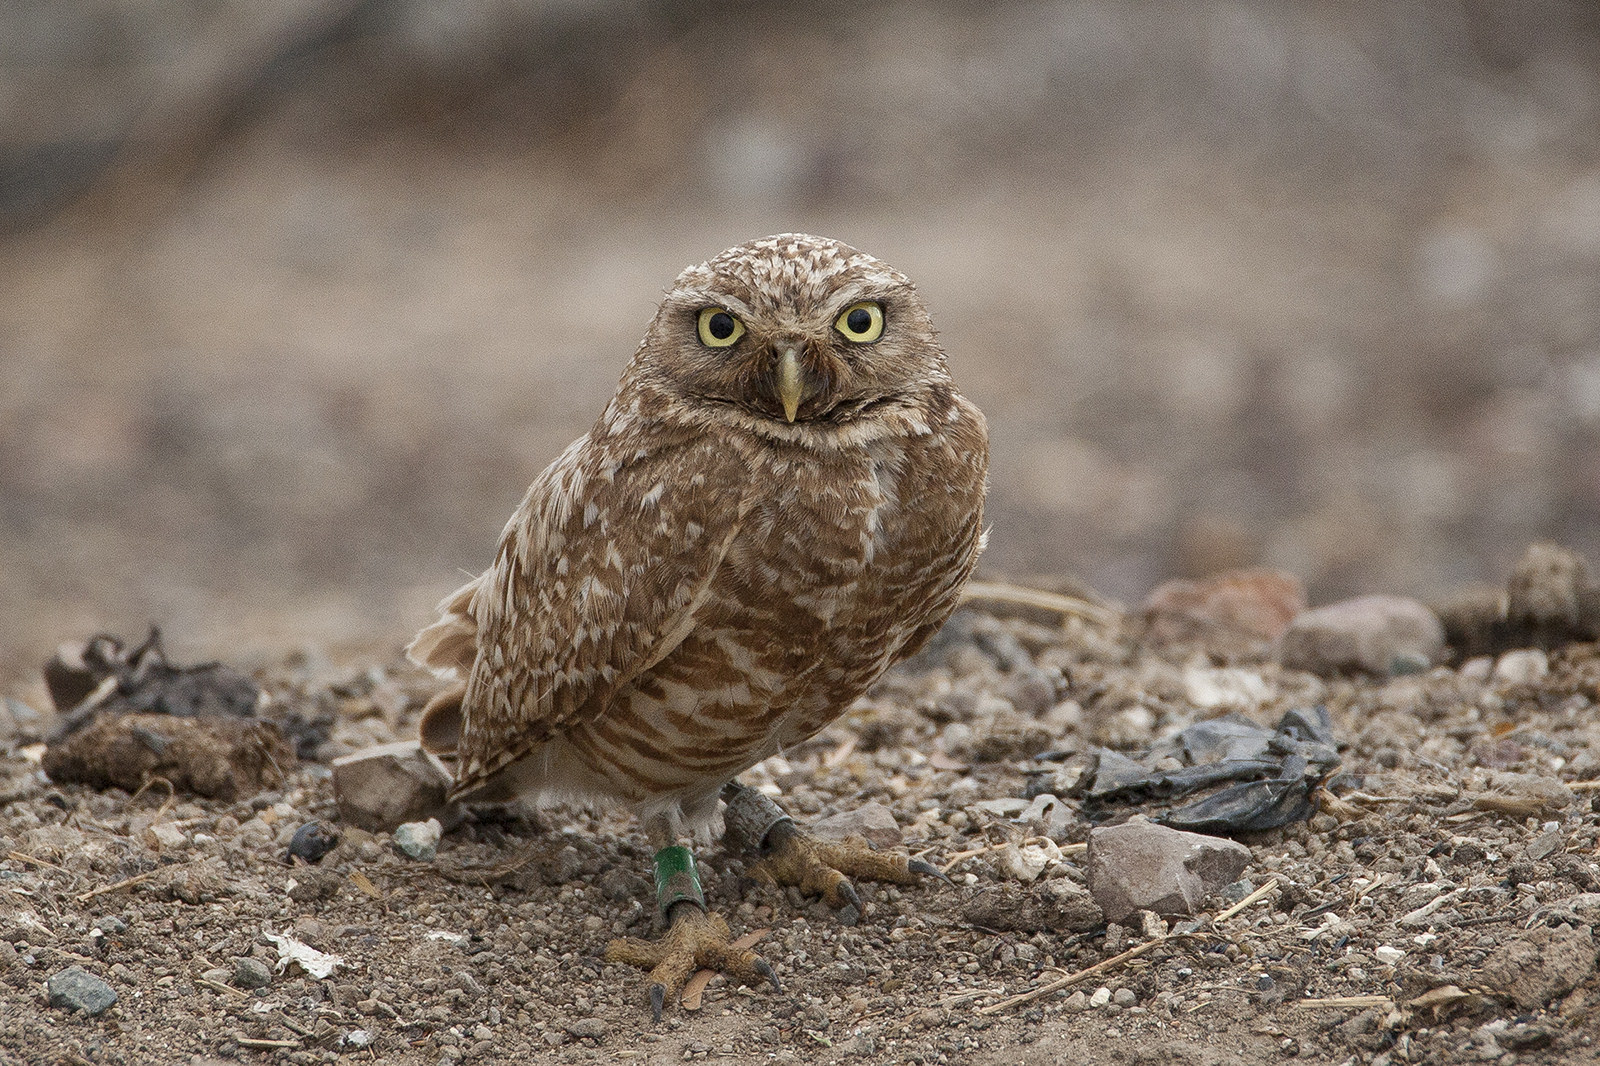 Owls have an incredibly acute sense of hearing. Two large holes in its skull, coupled with a facial disc that channels sound into the ear openings, enable an owl to hear a mouse stepping on a twig from 75 feet away.